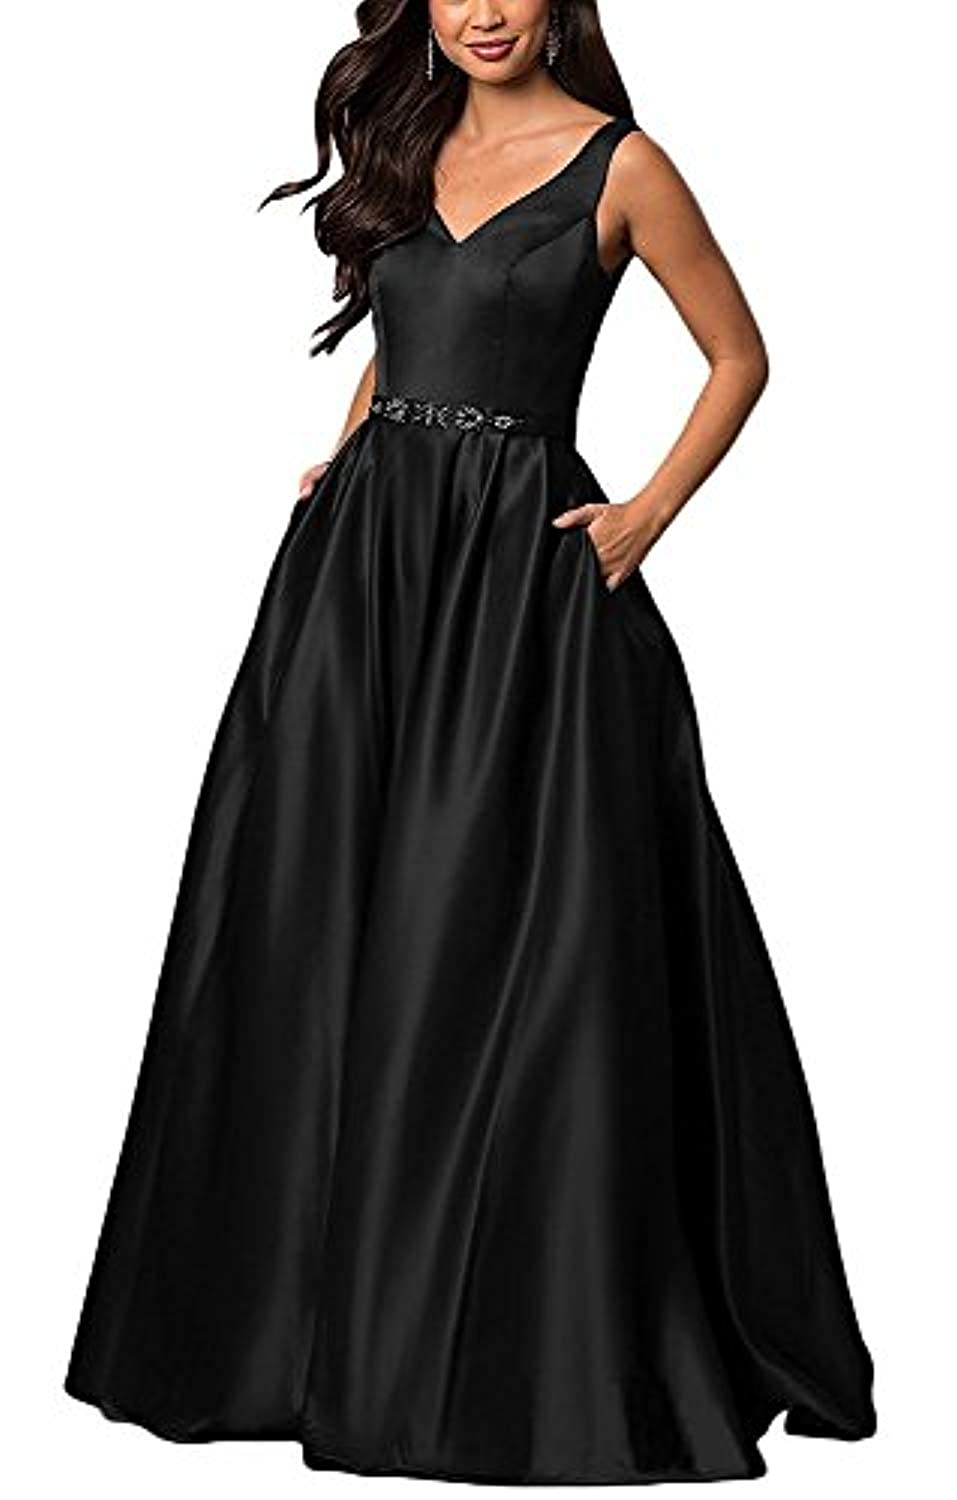 Black YHFDRESS Vintage Beaded A Line Evening Dresses V Neck Ruffles Satin Formal Party Gowns